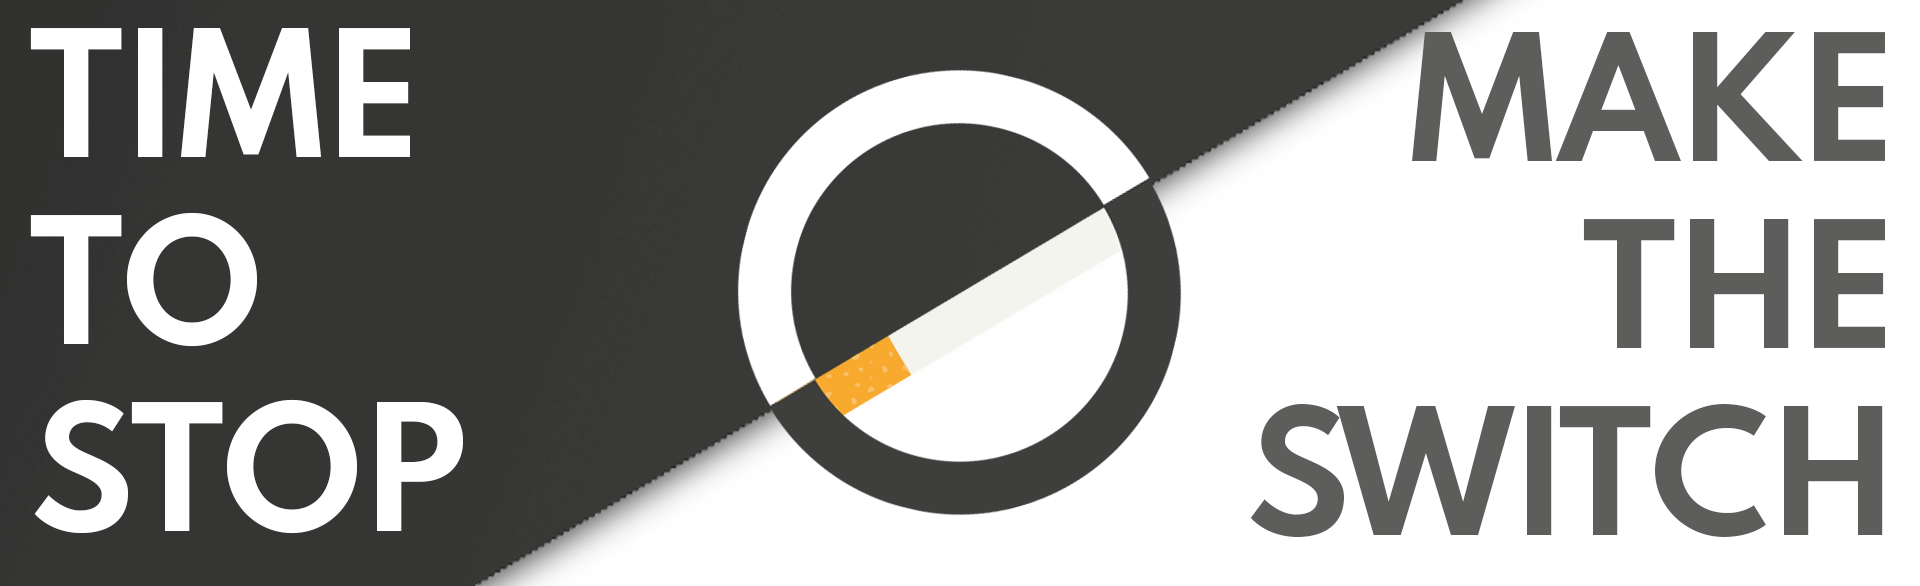 Make the Switch - Quit Smoking